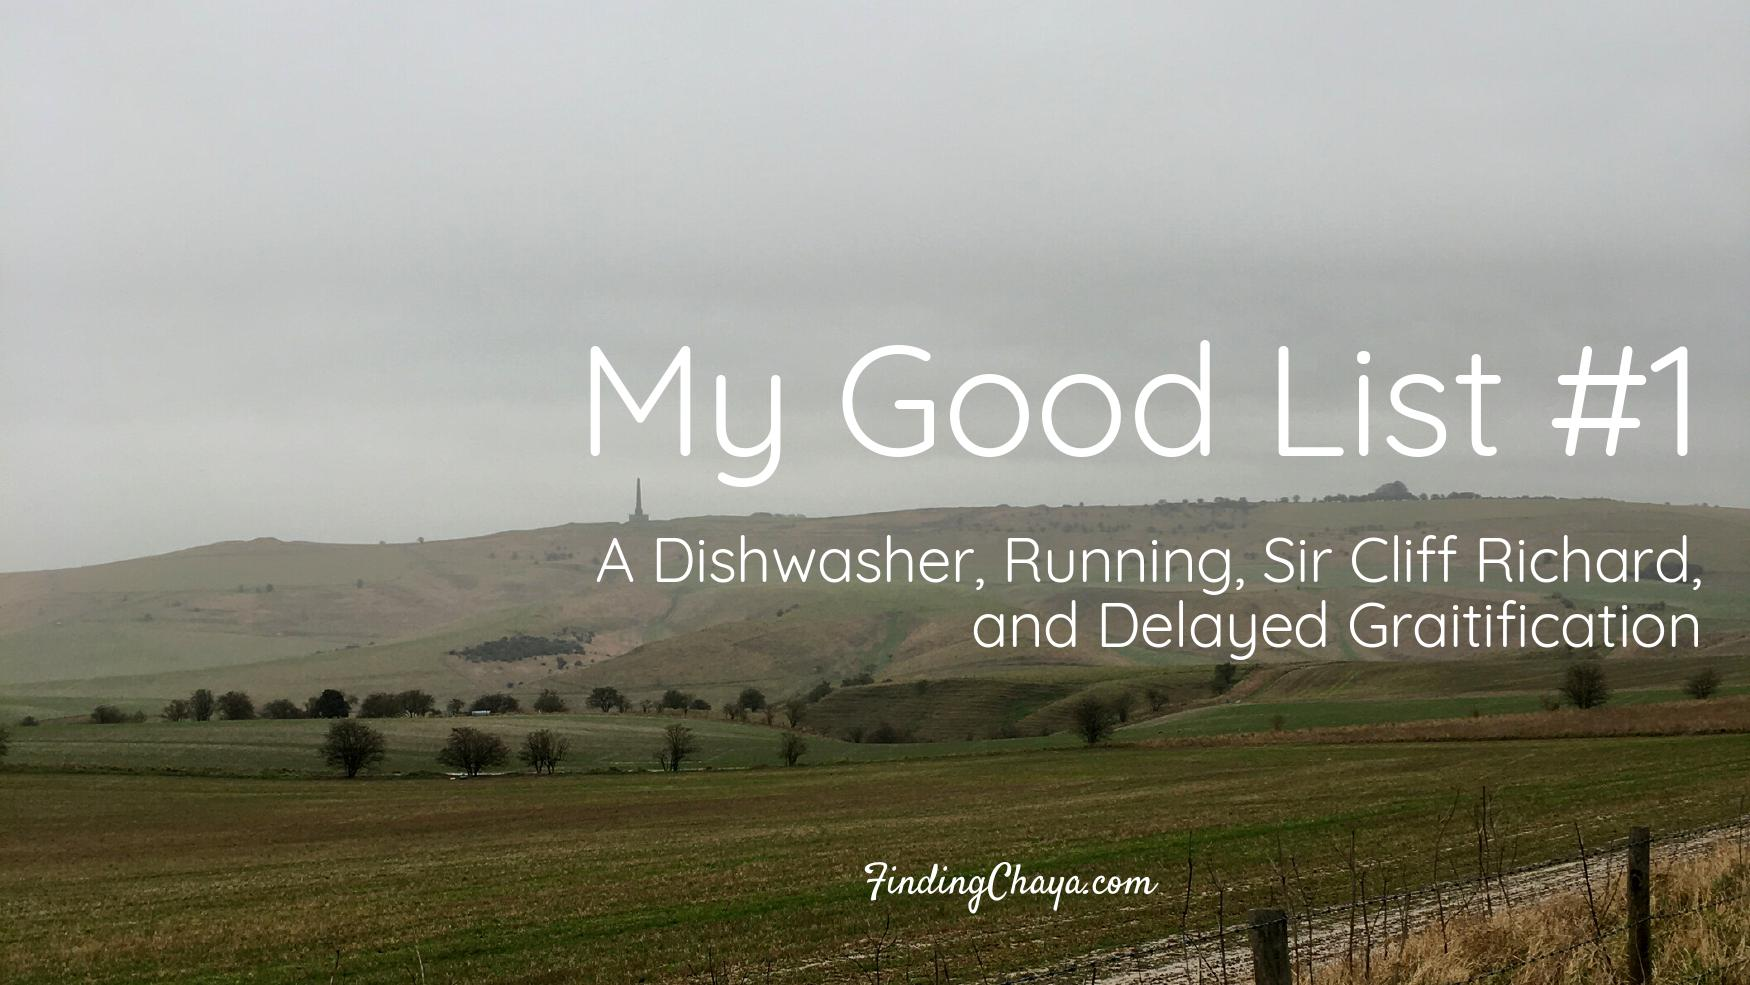 My Good List #1: A Dishwasher, Running, Sir Cliff Richard and Delayed Gratification